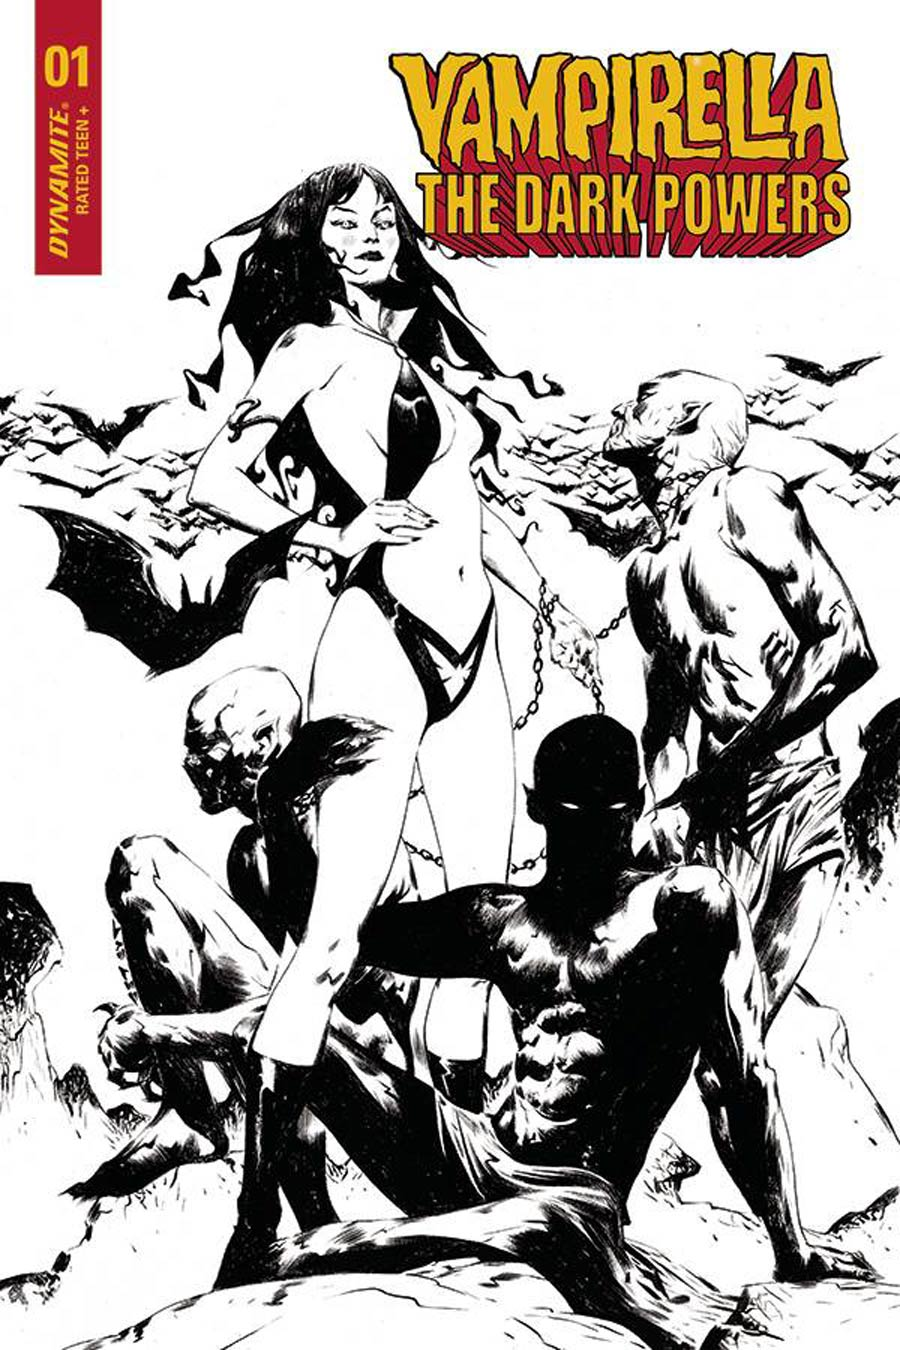 Vampirella The Dark Powers #1 Cover V Incentive Jae Lee Vampirellas Demons Black & White Cover